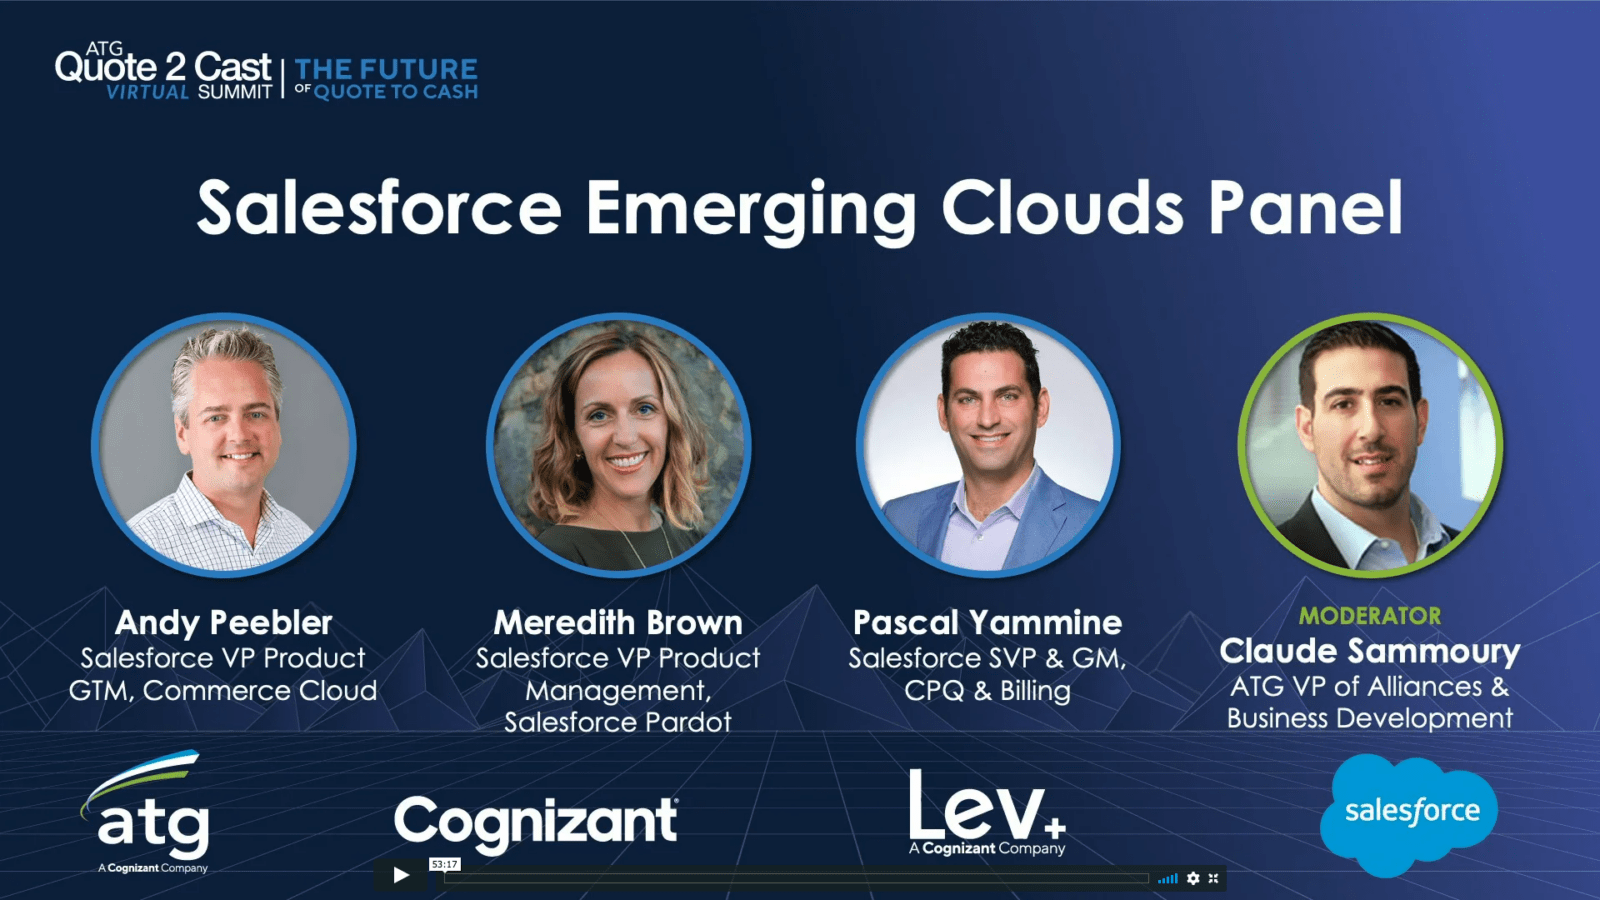 Salesforce Emerging Clouds Panel